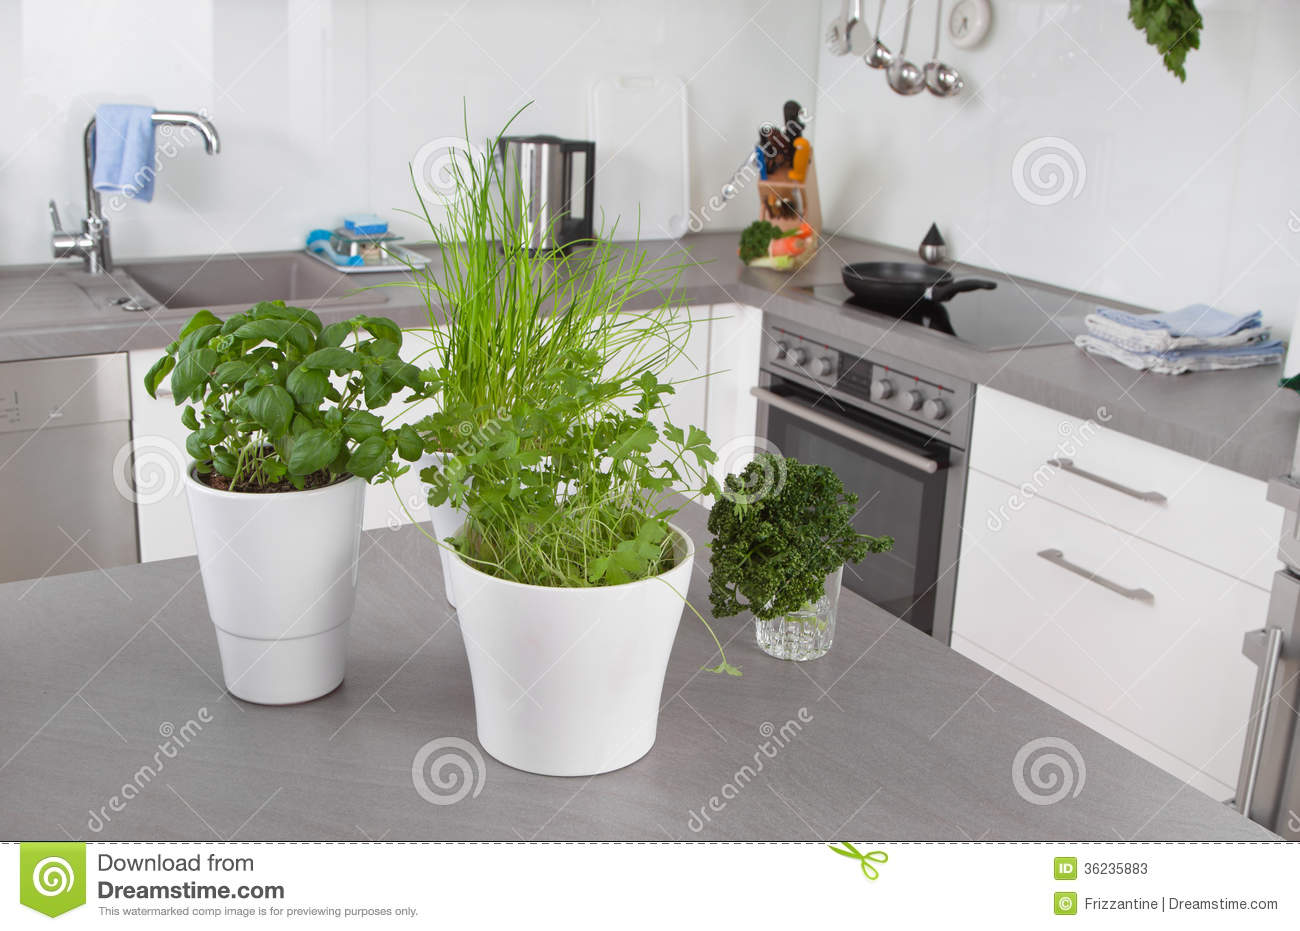 Fresh Herbs In Flower Pots In Kitchen Stock Image - Image of health ...